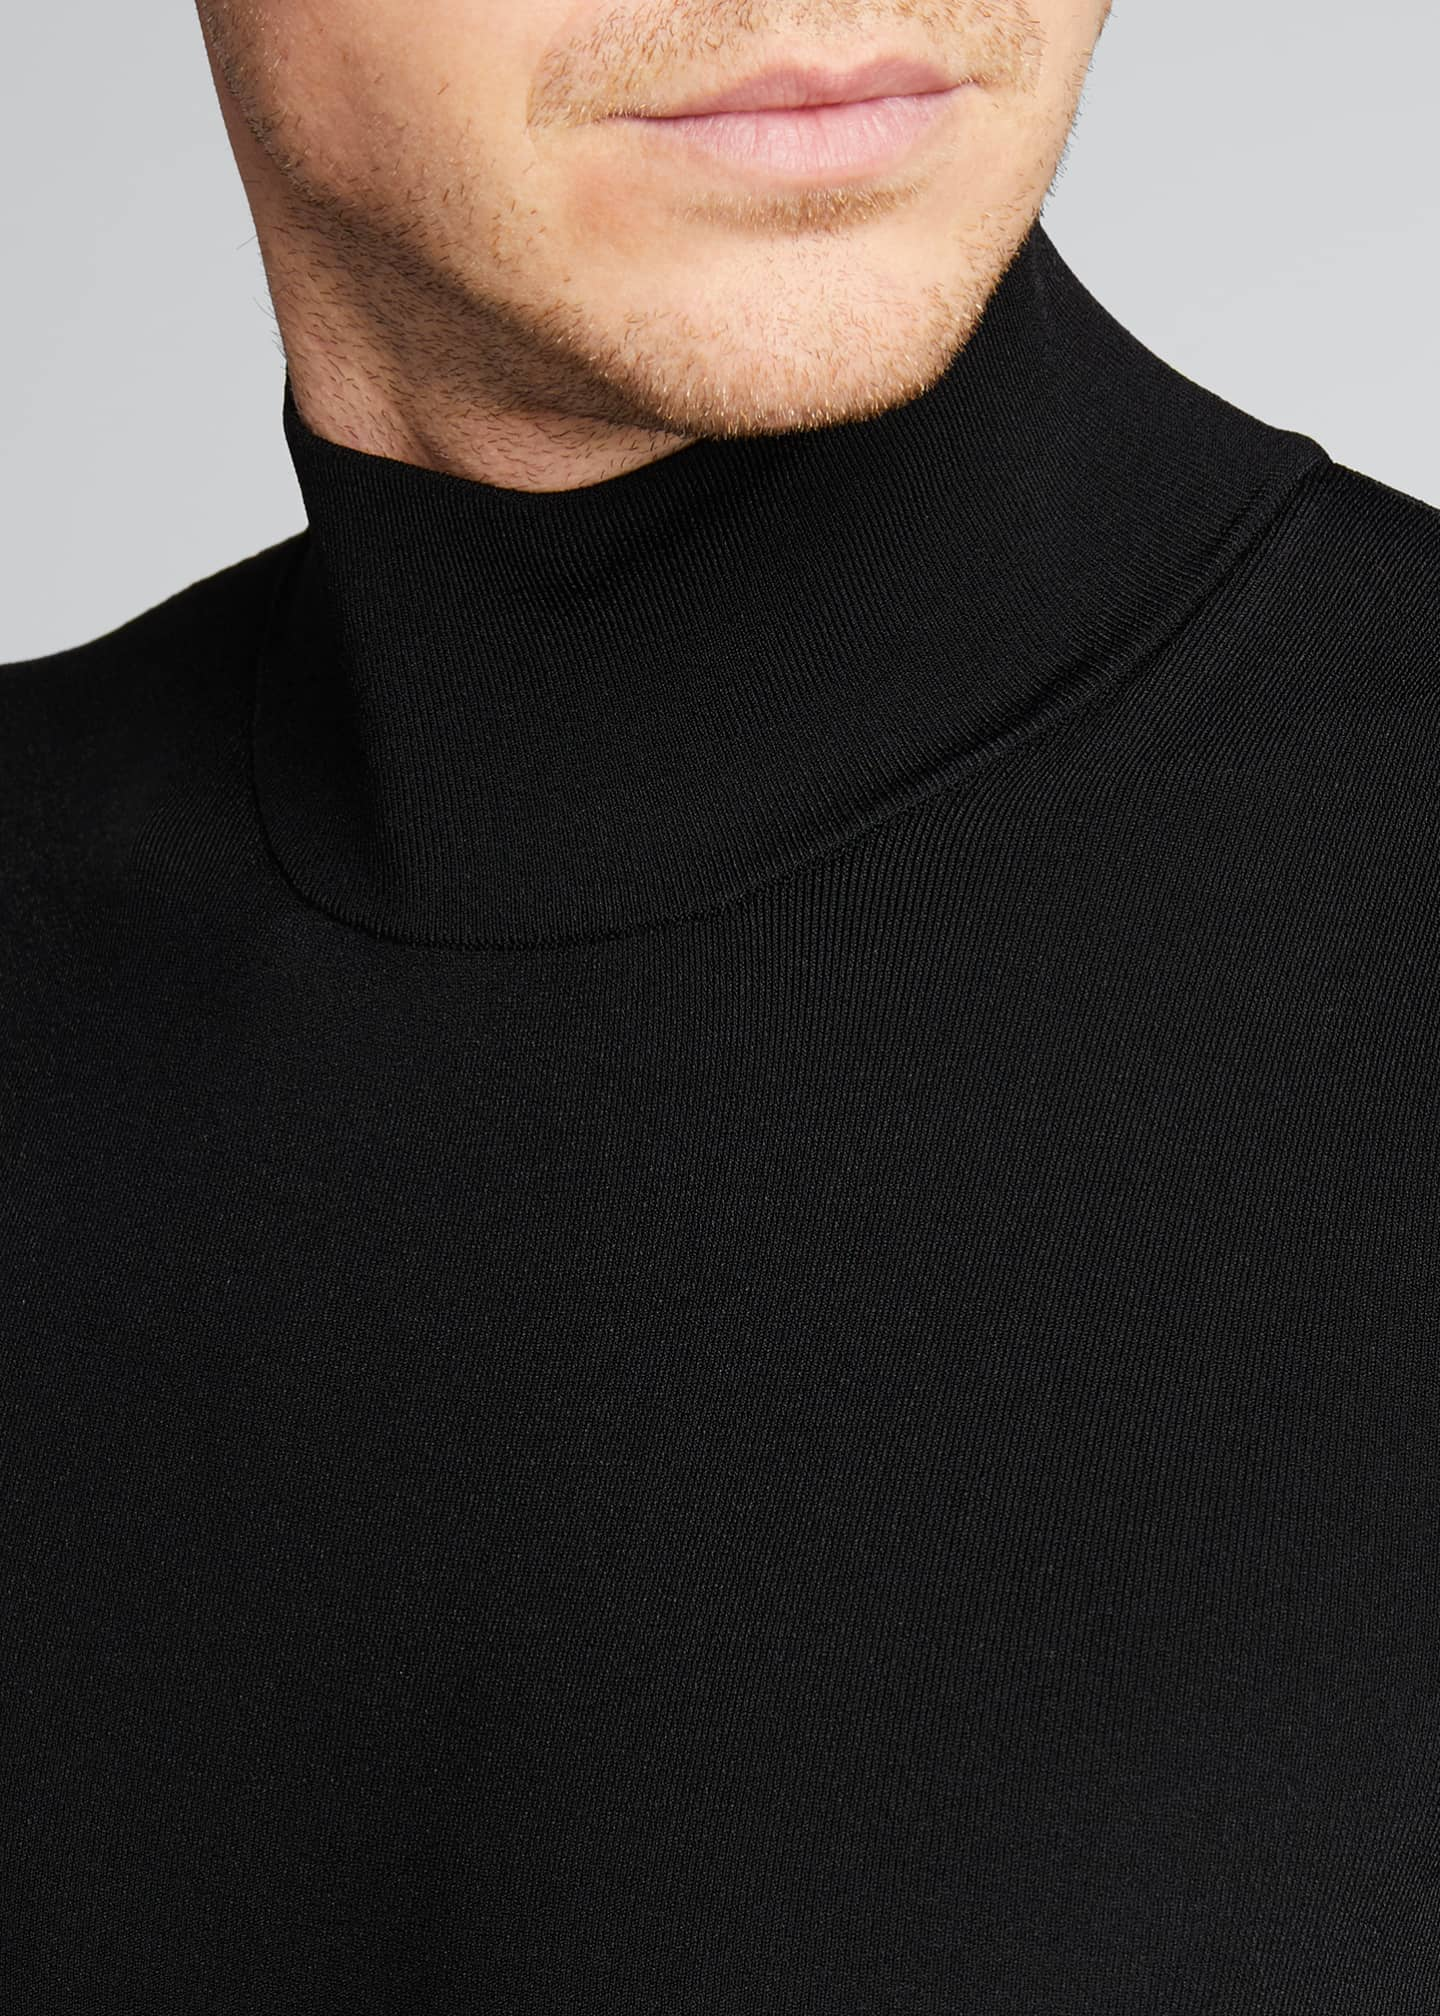 Image 4 of 5: Men's Tech-Knit Turtleneck Sweater